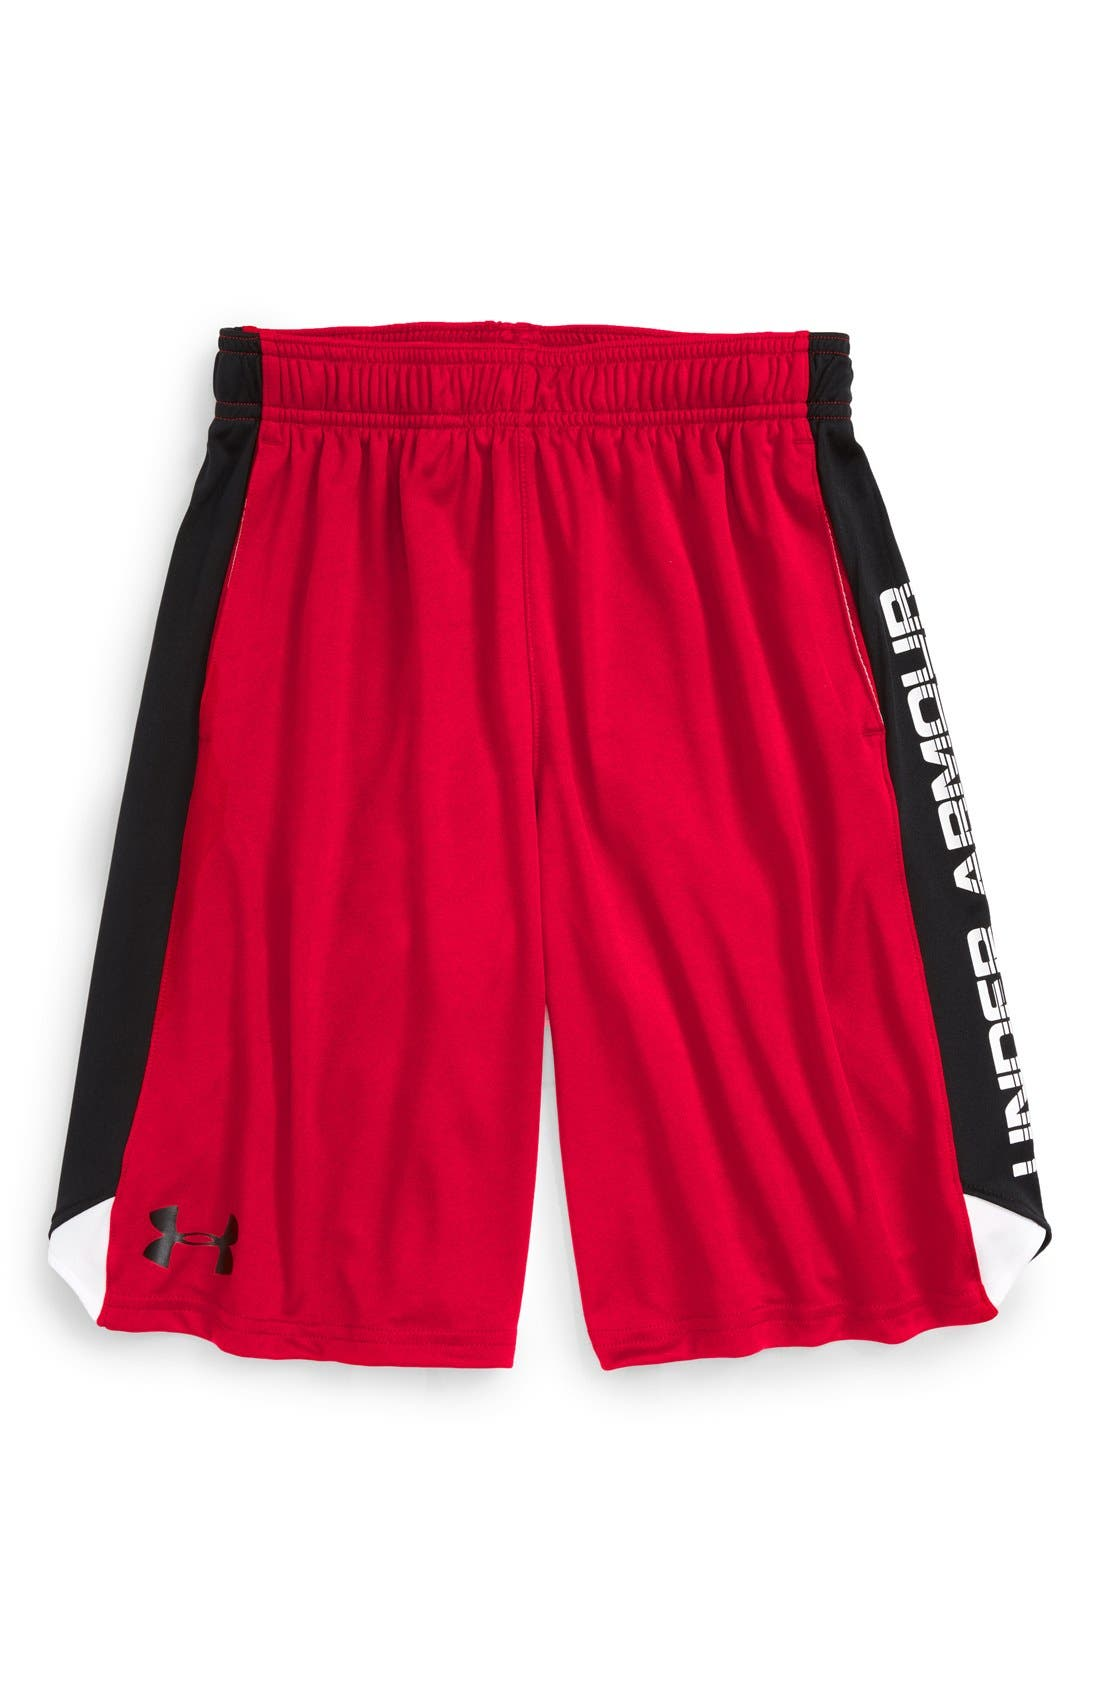 'Eliminator' HeatGear<sup>®</sup> Shorts,                             Main thumbnail 1, color,                             Red/ Black/ Black